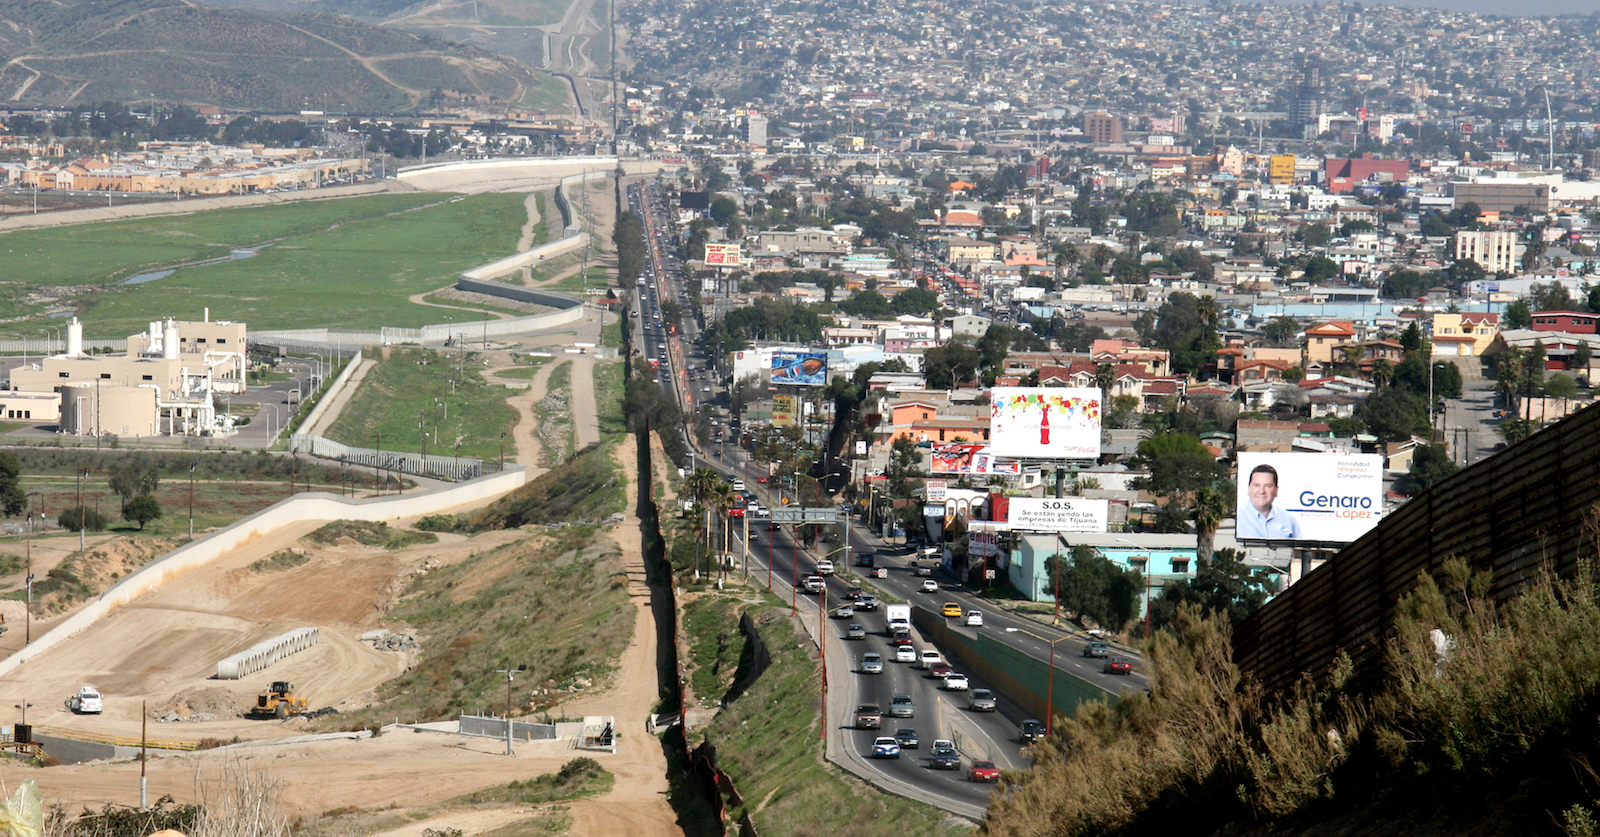 Border between Mexico (right) and the United States (left) (Photo: Wikimedia Commons)